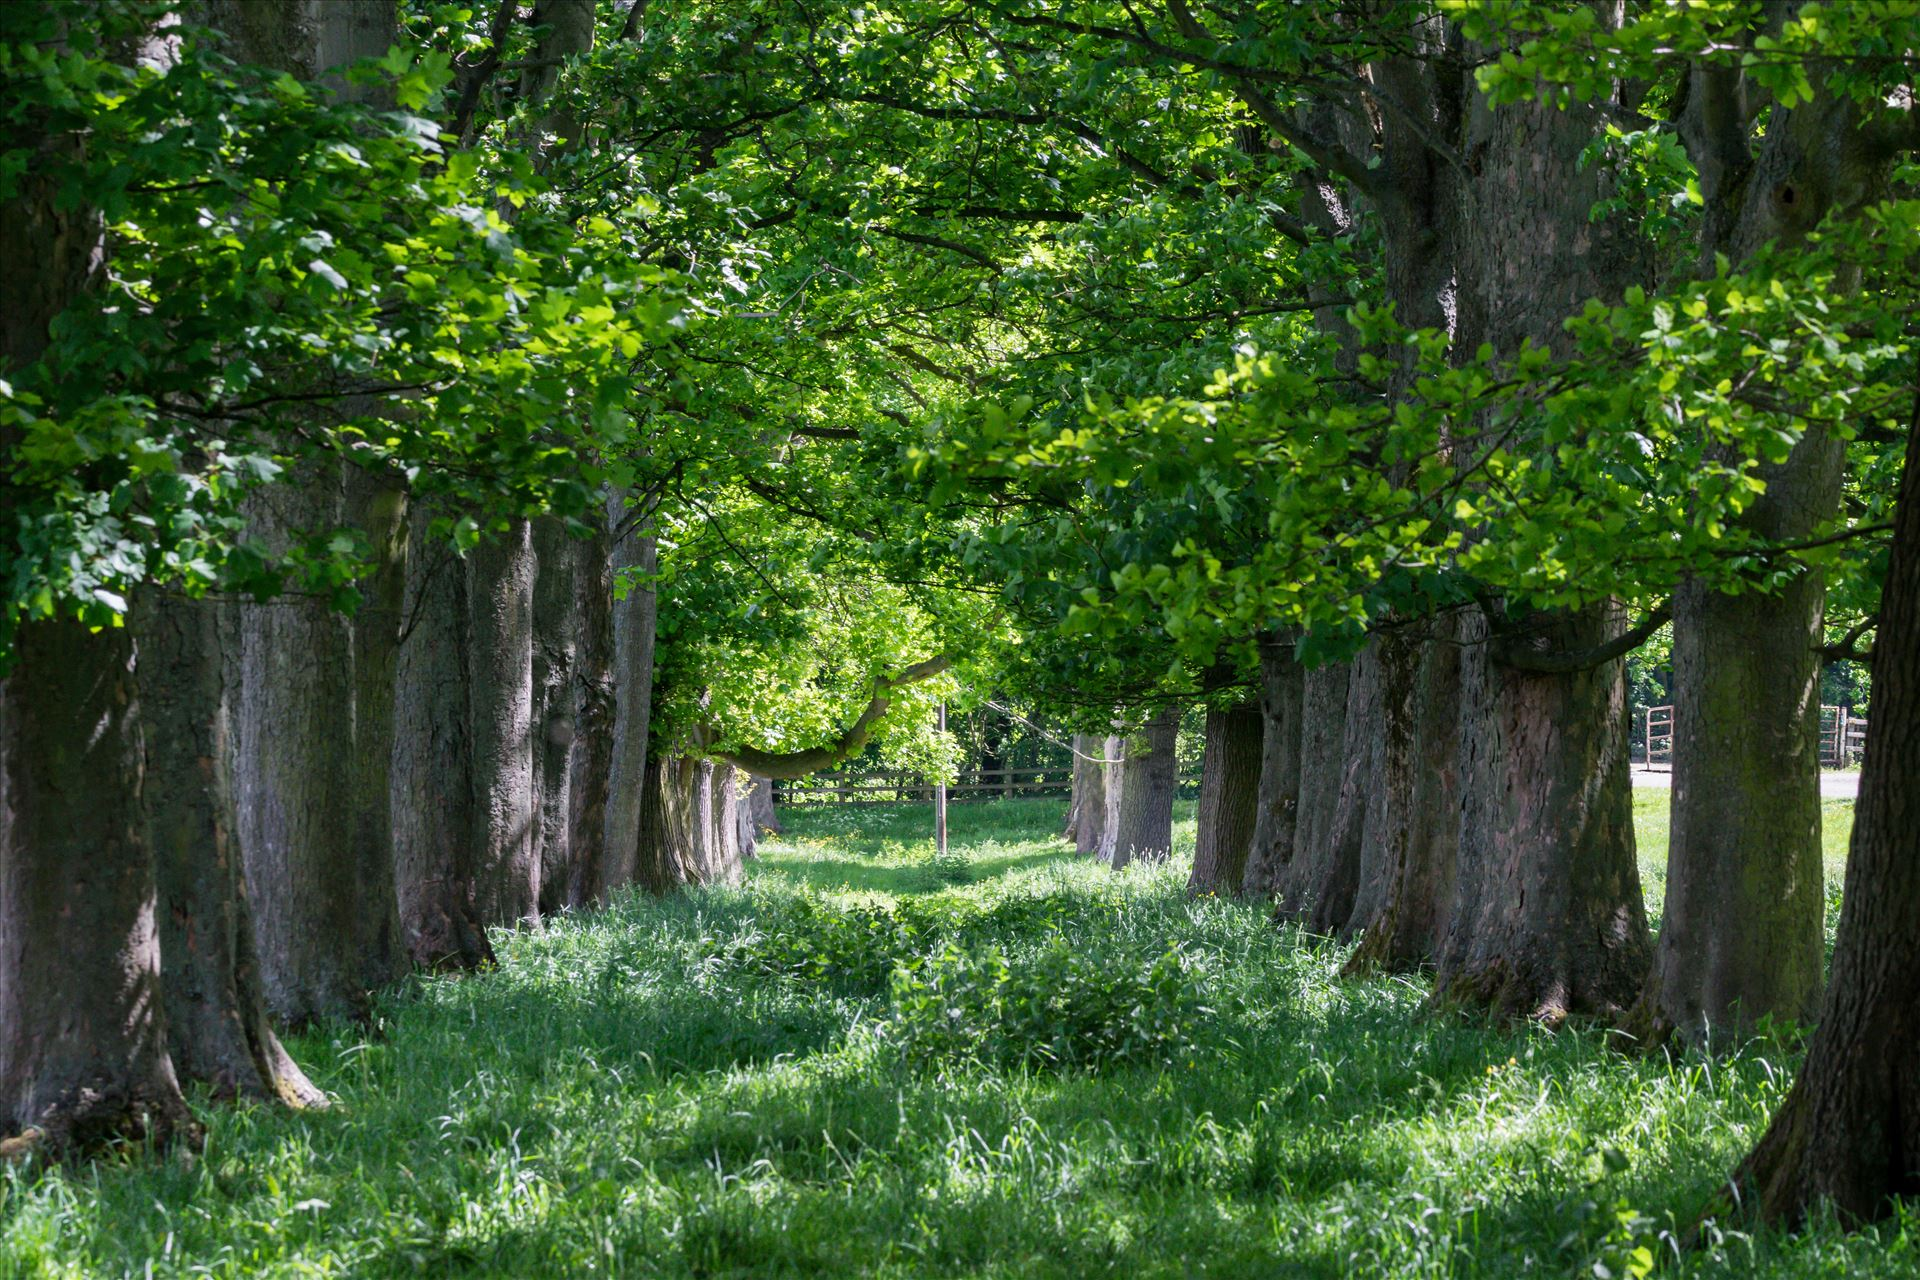 Summer Avenue of Tree\'s - An Avenue of tree's taken in the summer of 2017 by AJ Stoves Photography